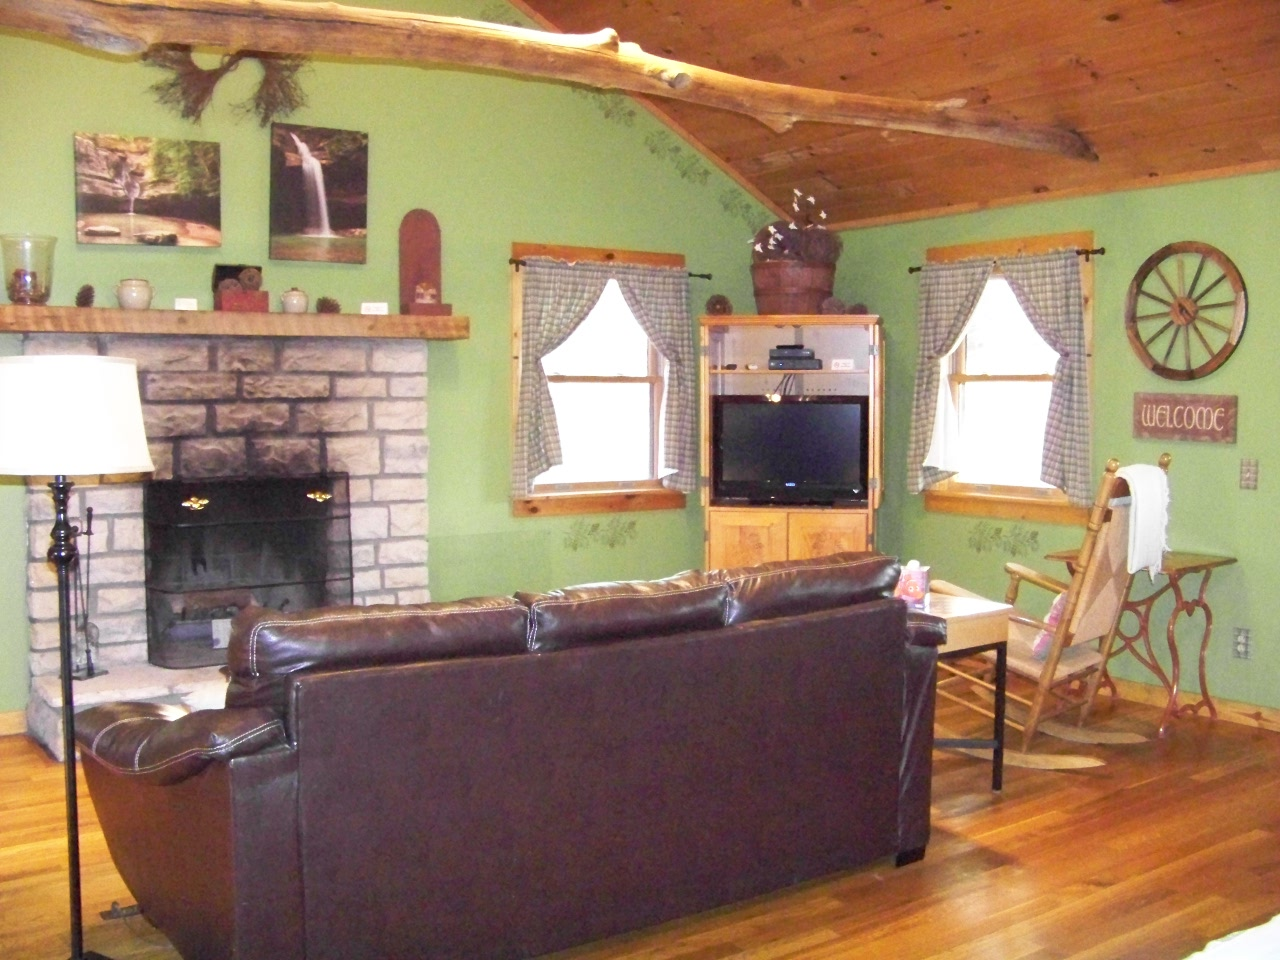 kits cabin southern logan washington virginia prices cortez oregon ohio cabins in log colorado